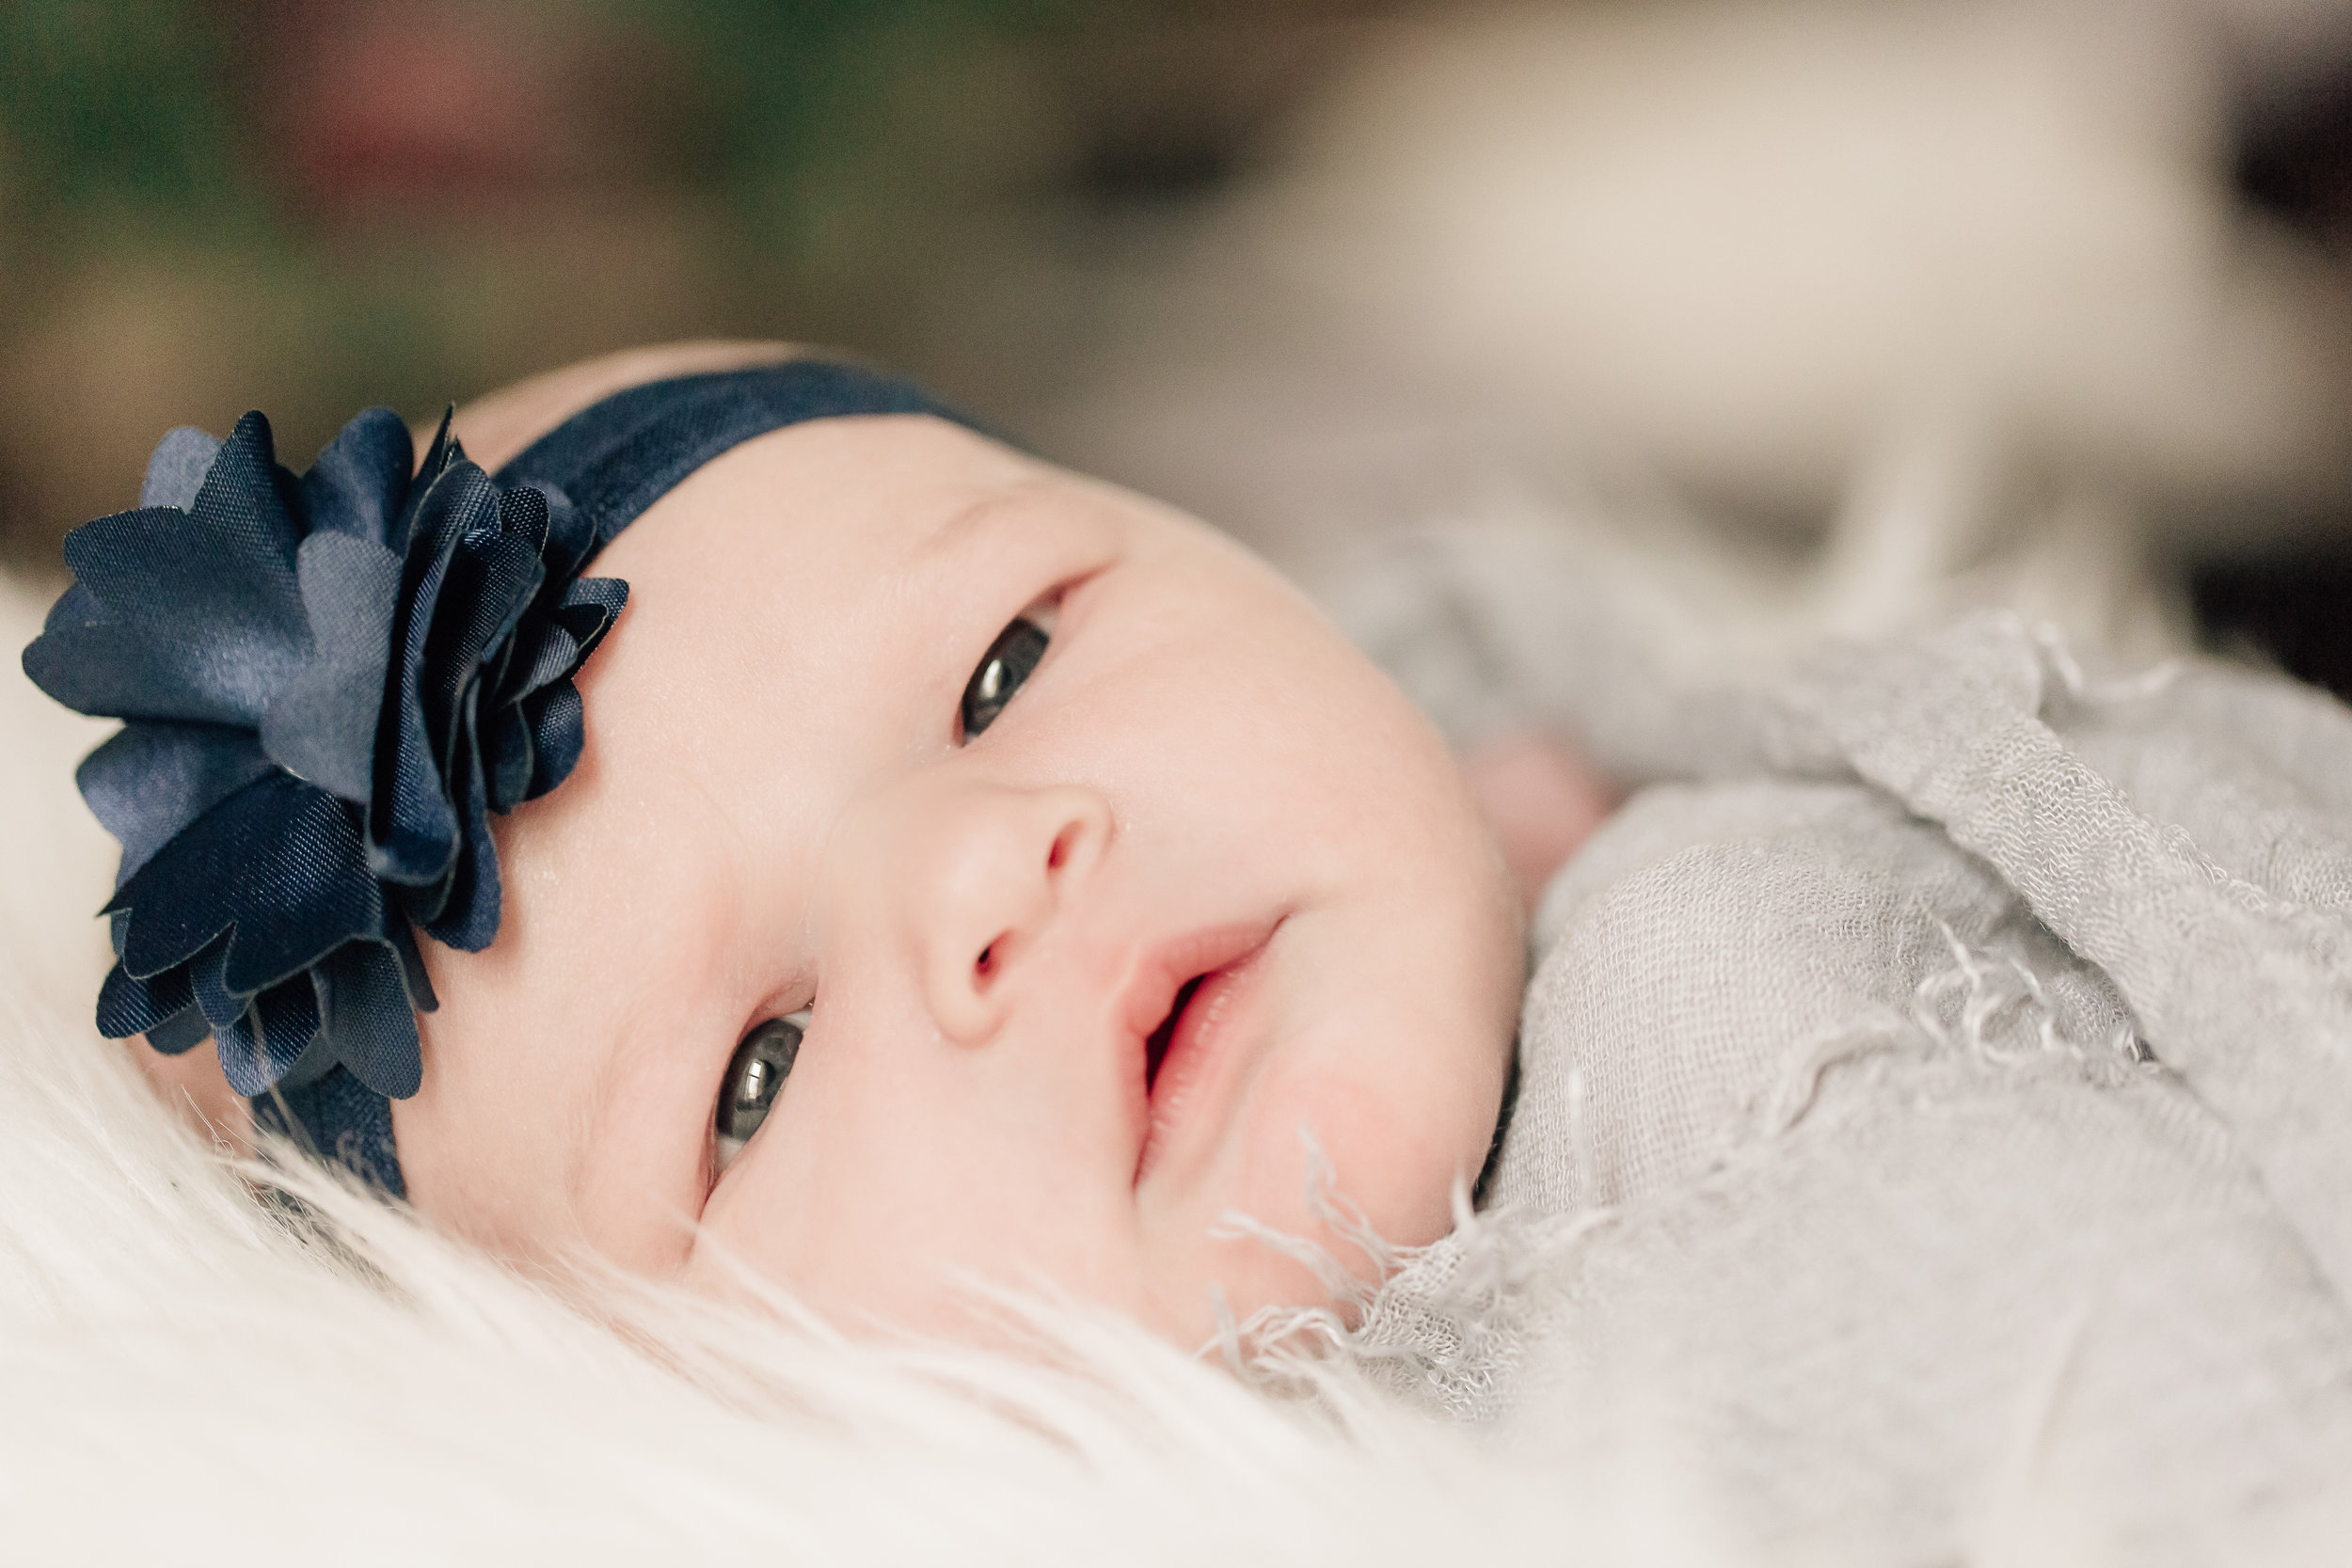 Newborn-Session-Goodhue-MN-048-5DM35765.jpg